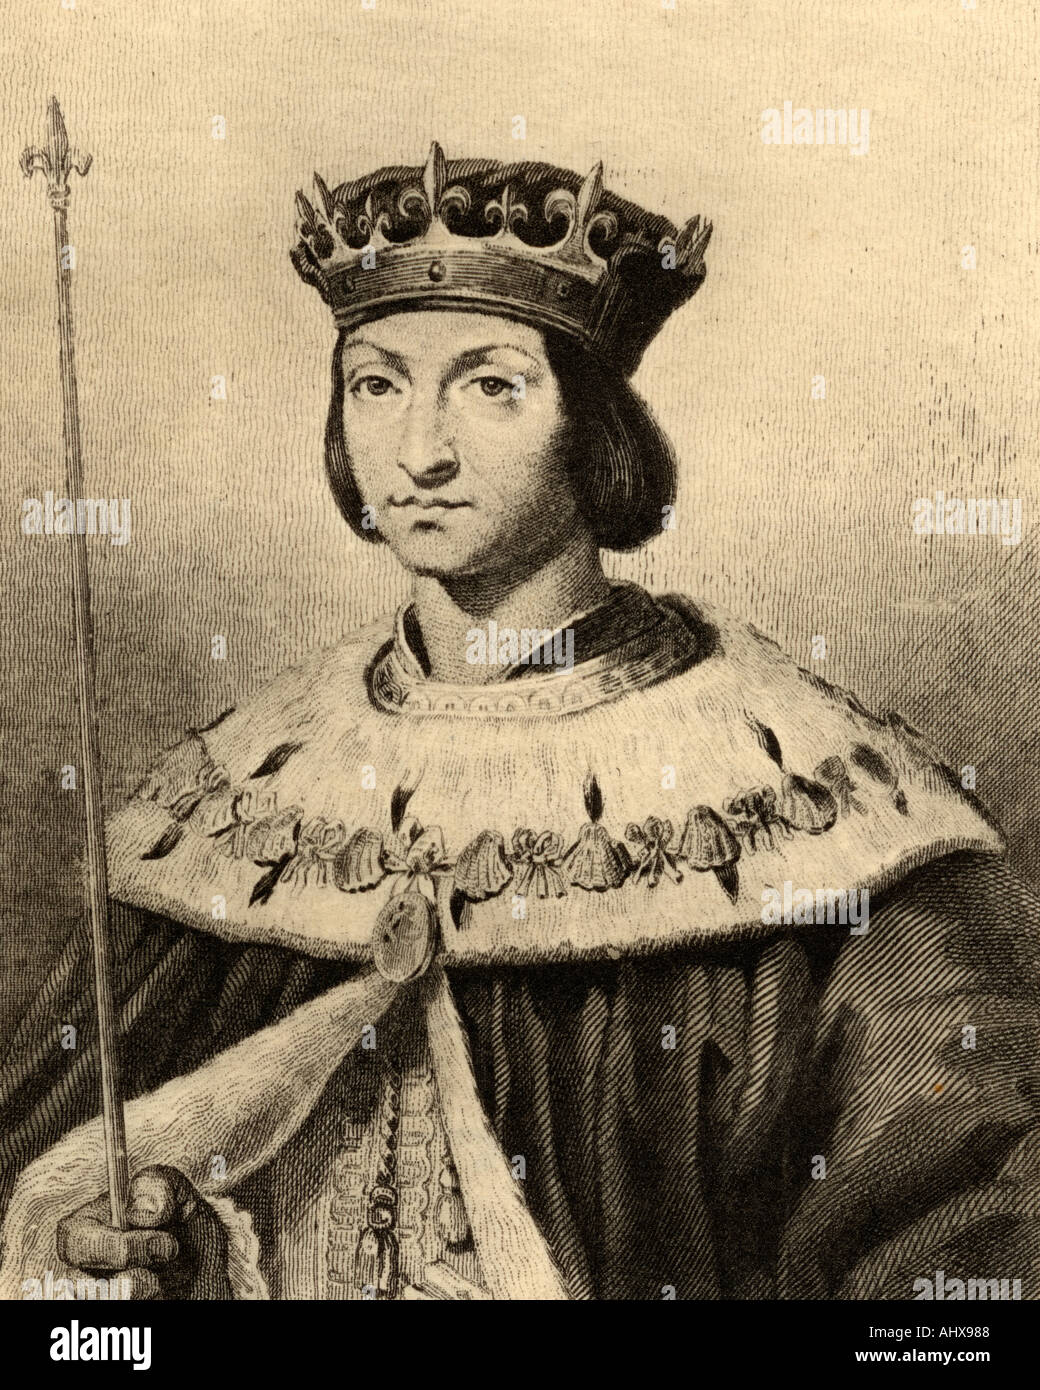 Louis XII of France, Father of the People 1462 -1515.  King of France from 1498 to 1515 and King of Naples from 1501 to 1504.